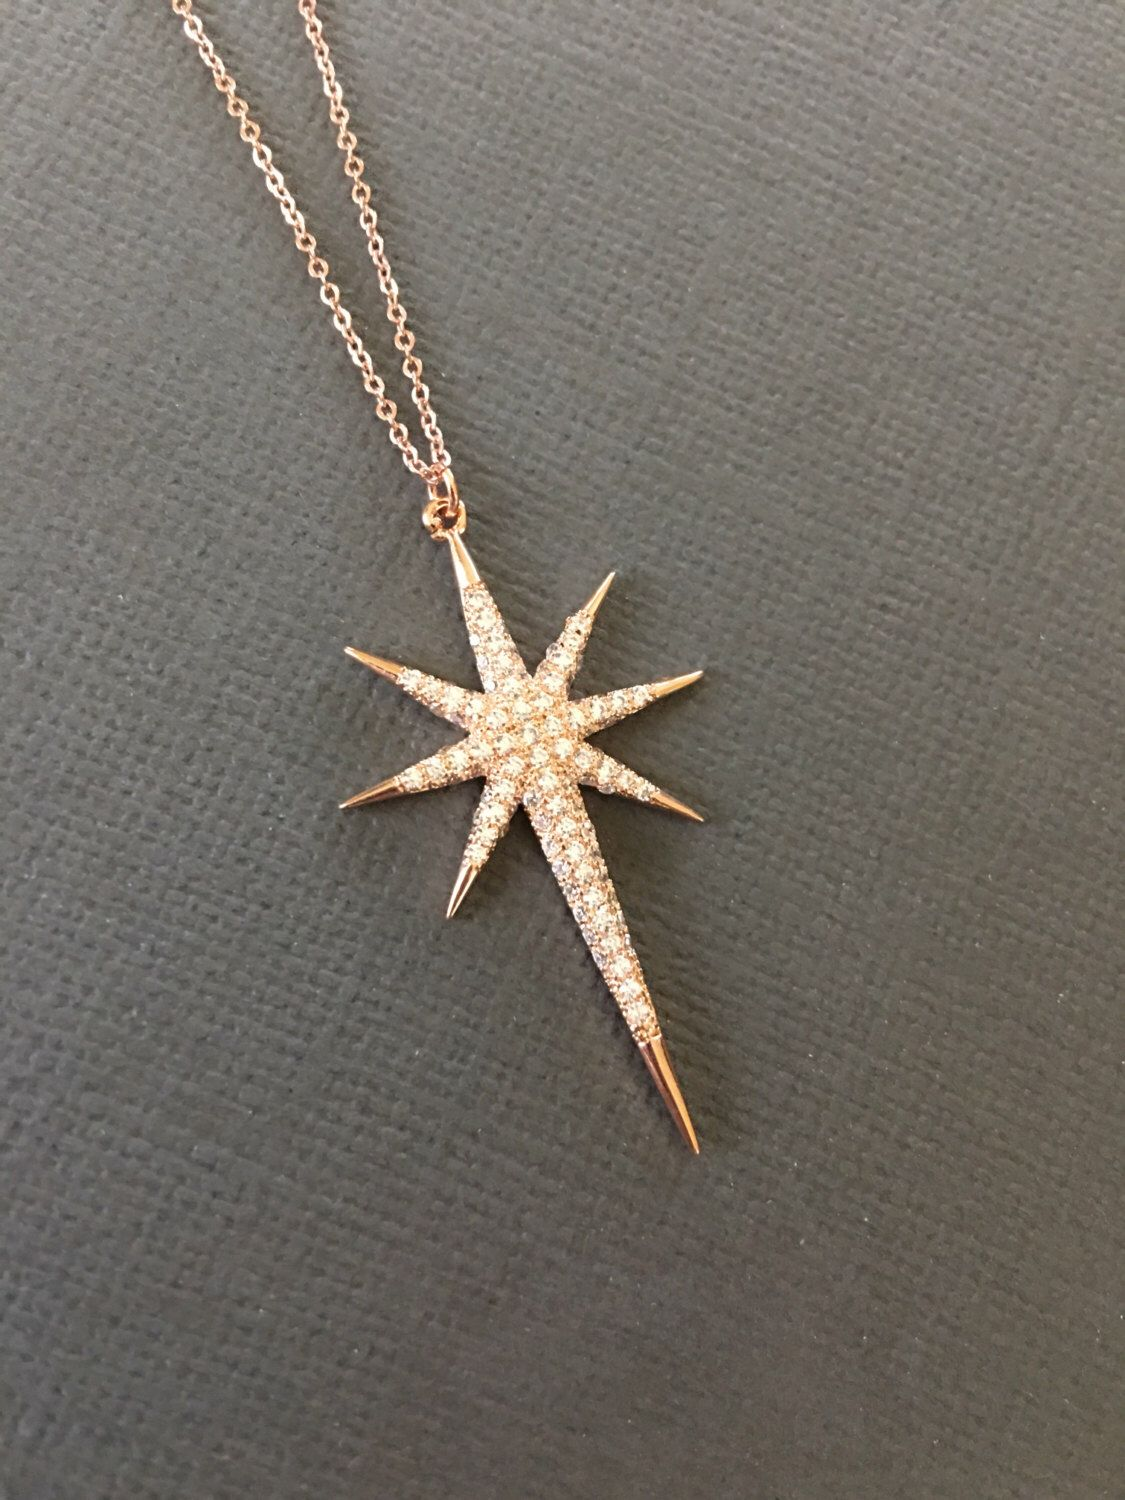 by original charm s product north compass star j necklace pendant jewellery jandsjewellery